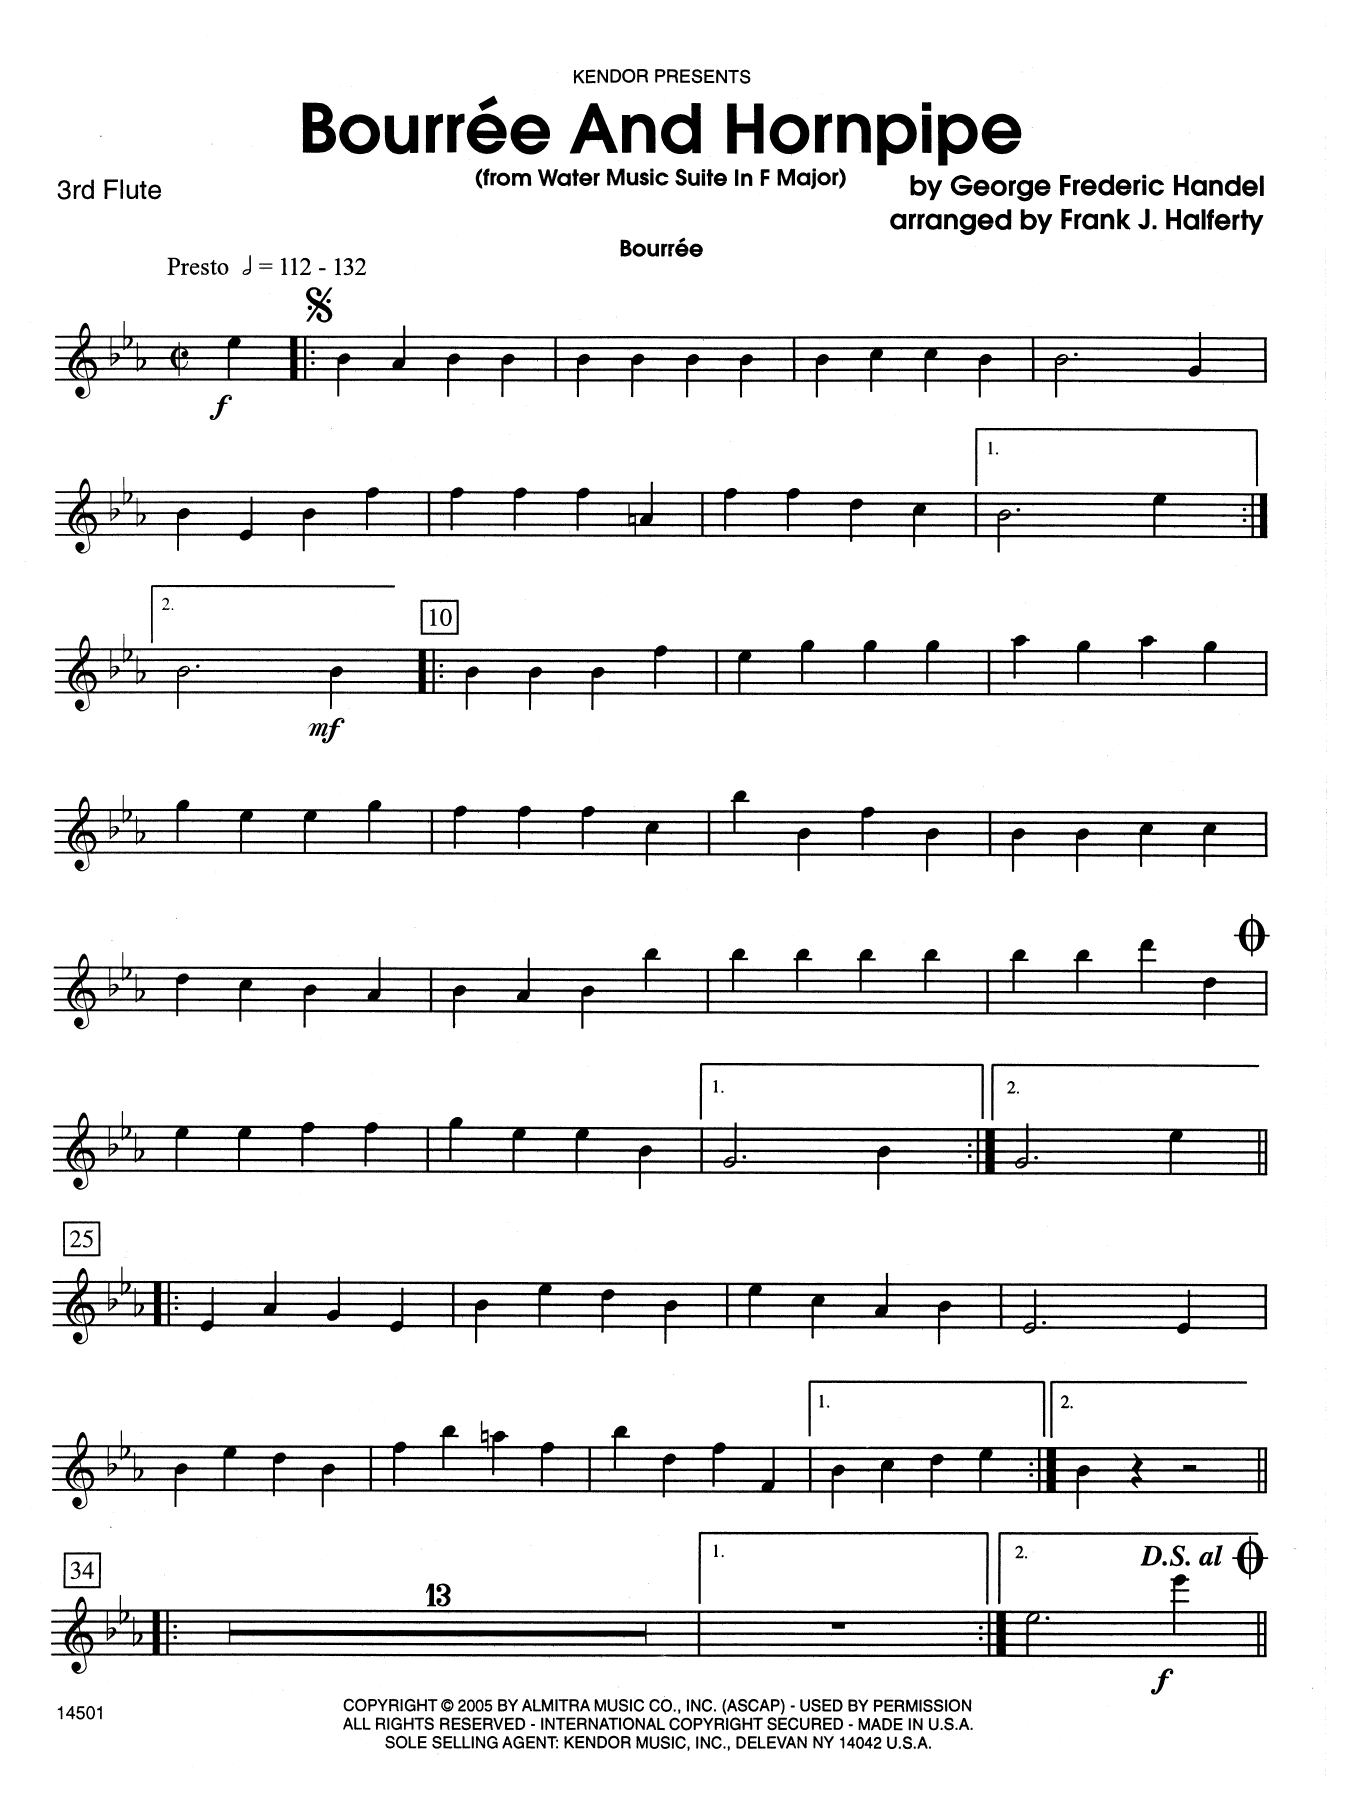 Bourree And Hornpipe (from Water Music Suite In F Major) - 3rd C Flute Sheet Music